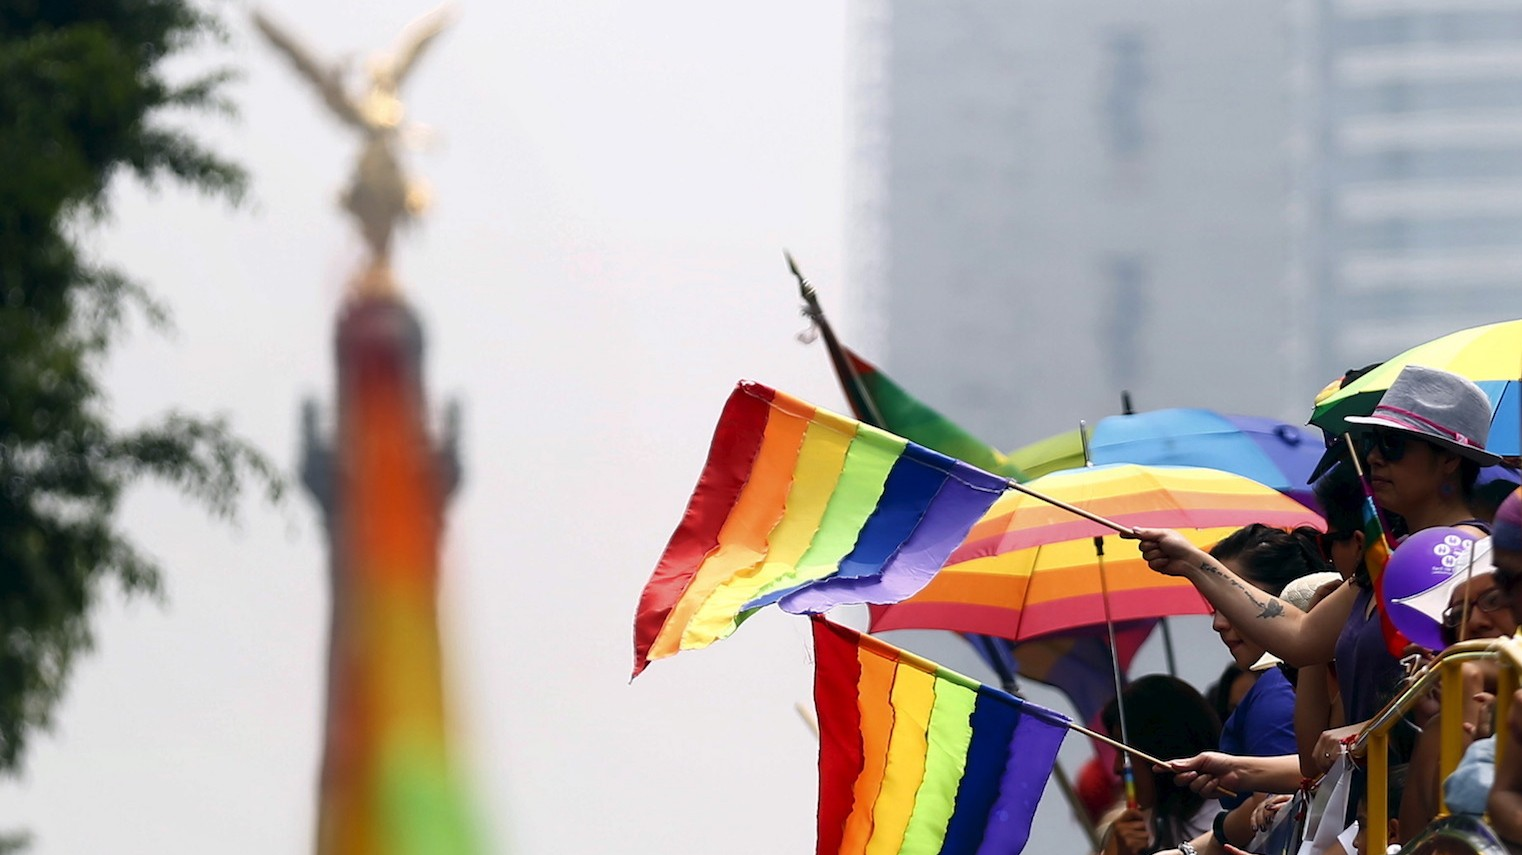 Mexico's President Wants to Legalize Same-Sex Marriage